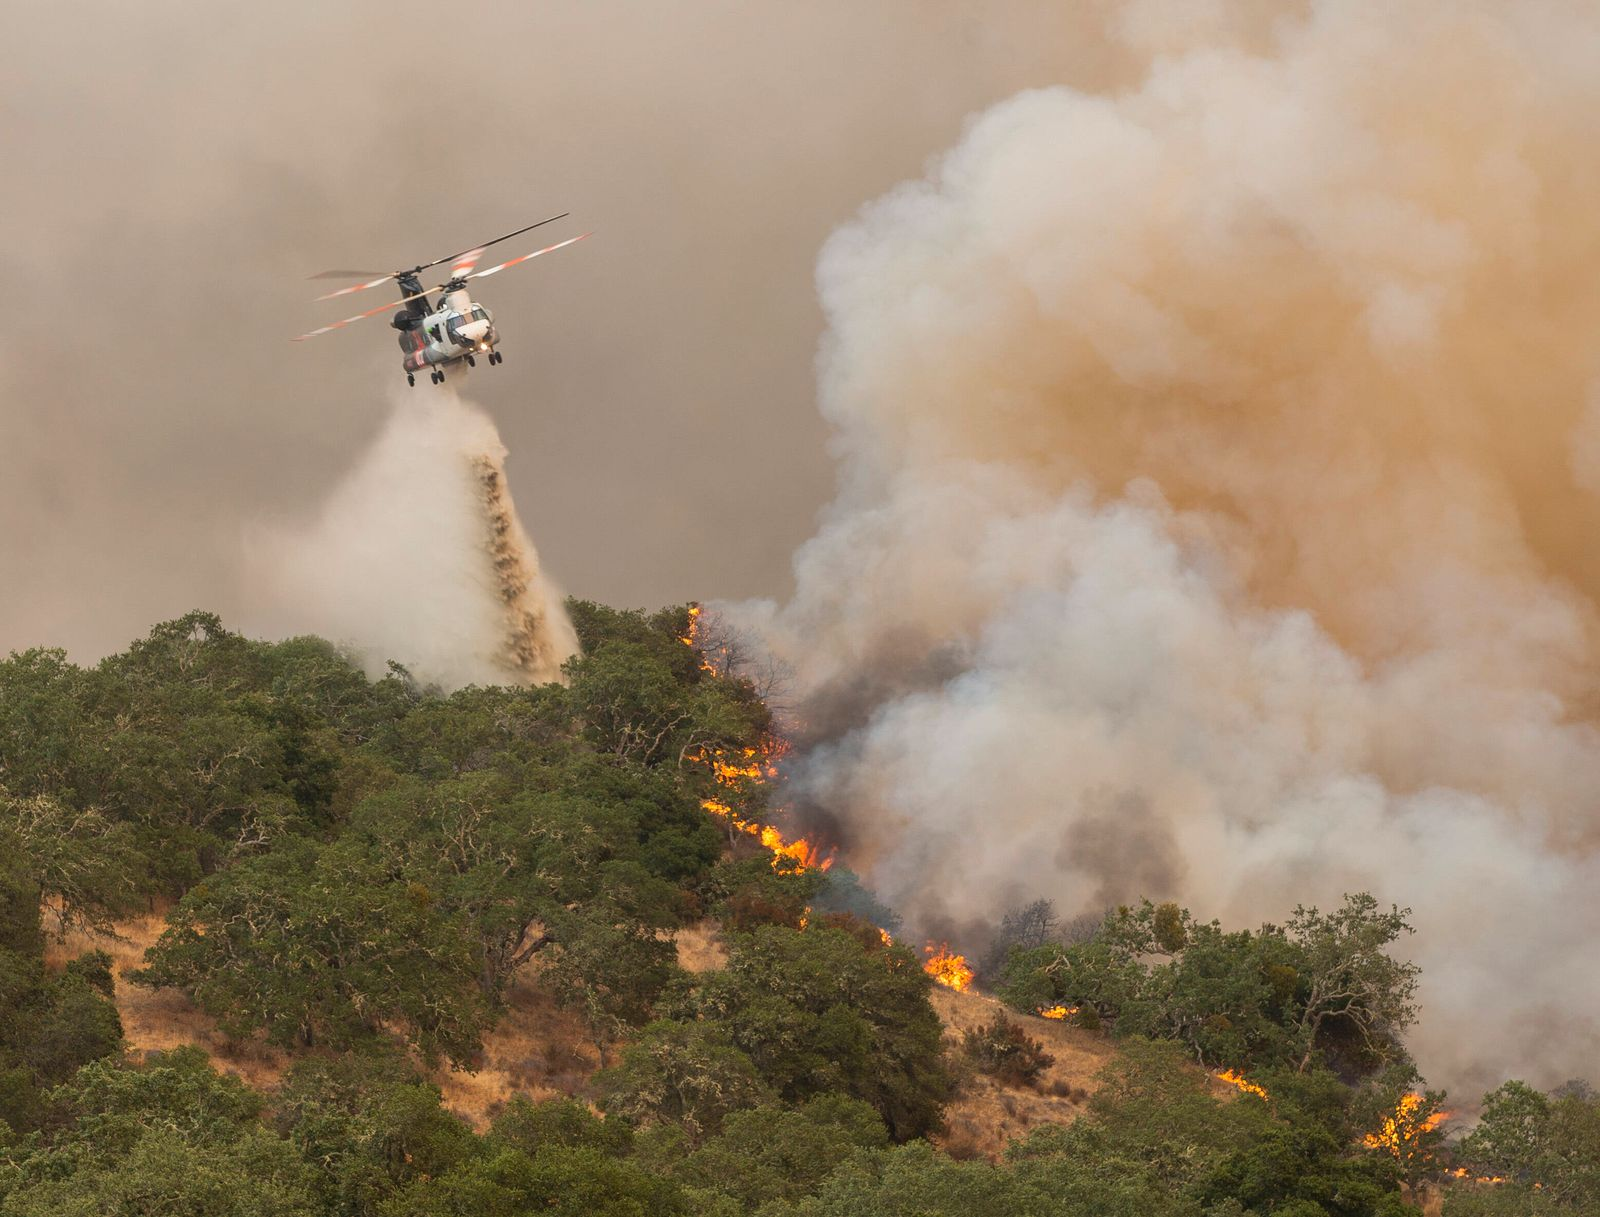 August 19, 2020, Carmel Valley, California, U.S.A: A Chinook helicopter drops water on a active fire line that s burning